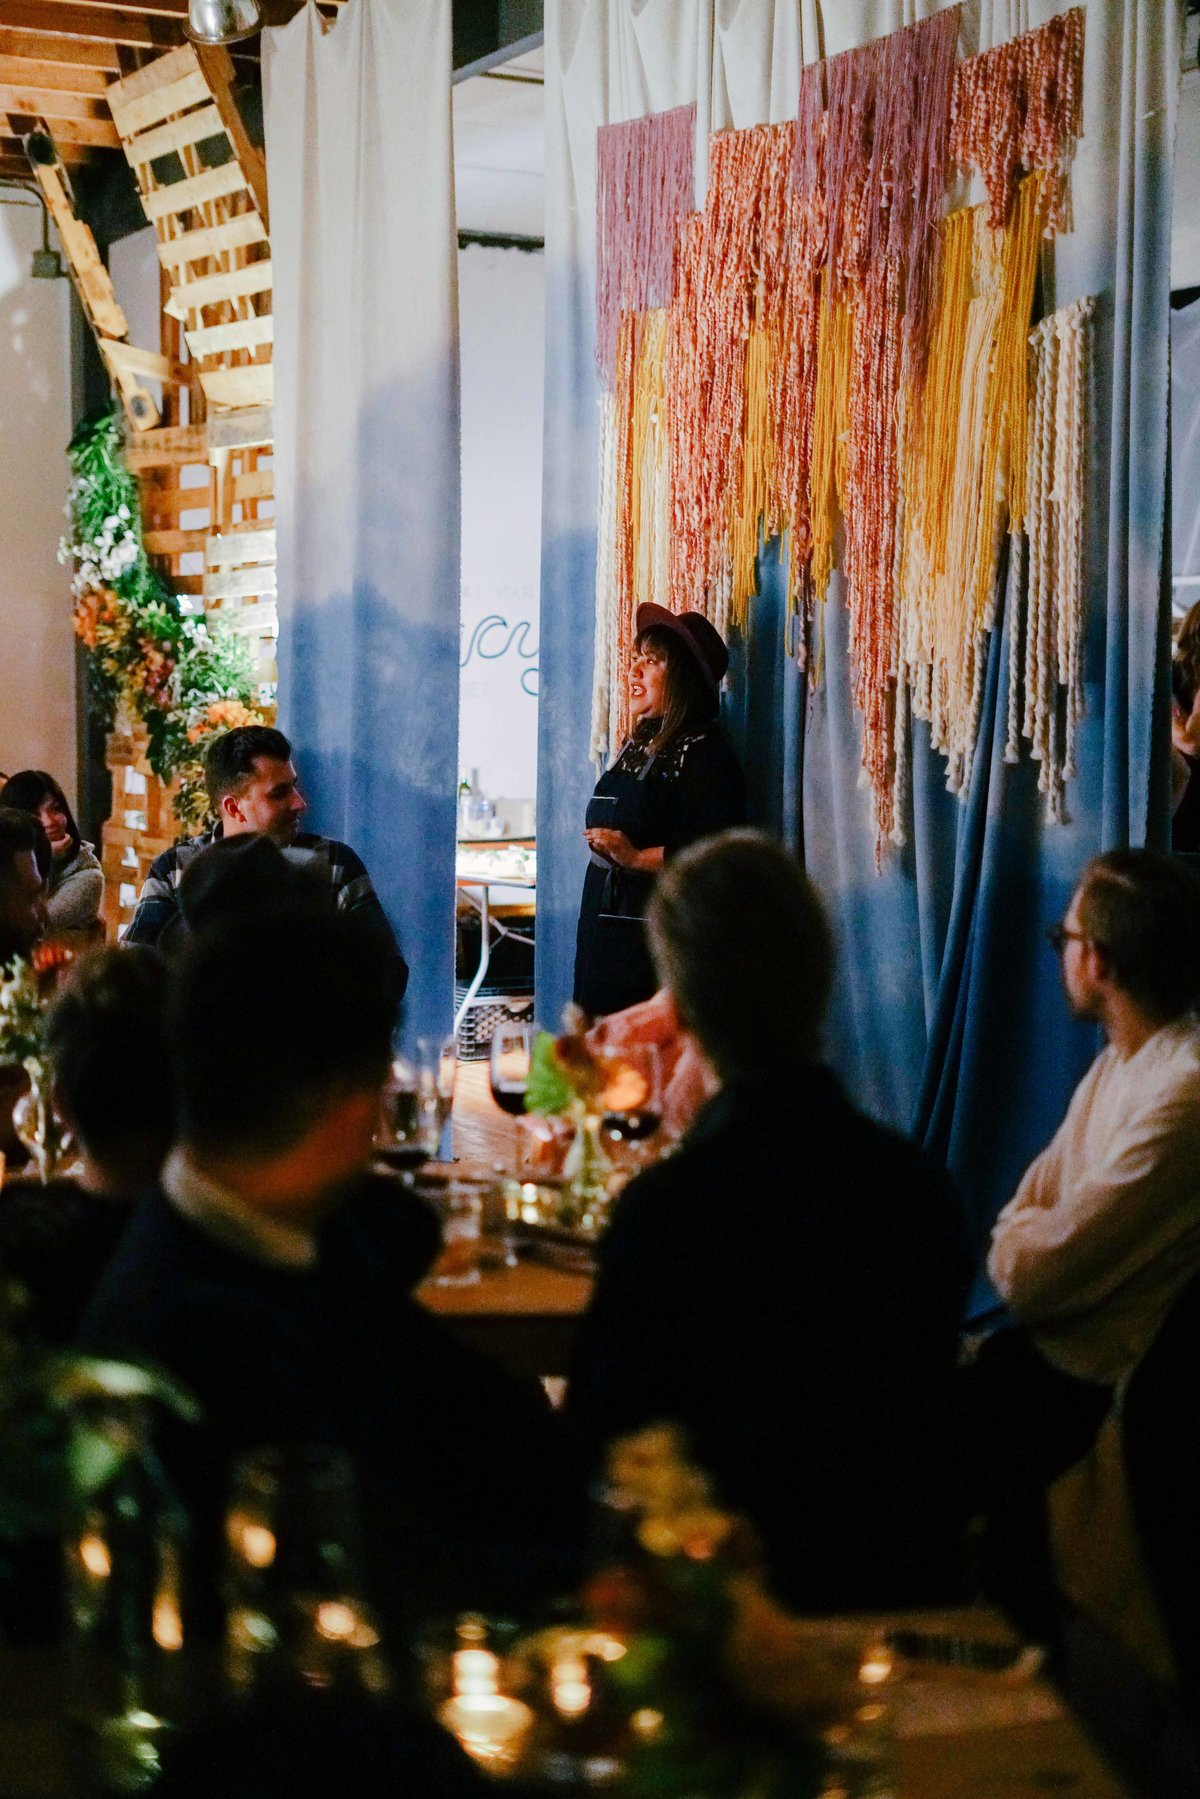 Dinner party with colorful string background